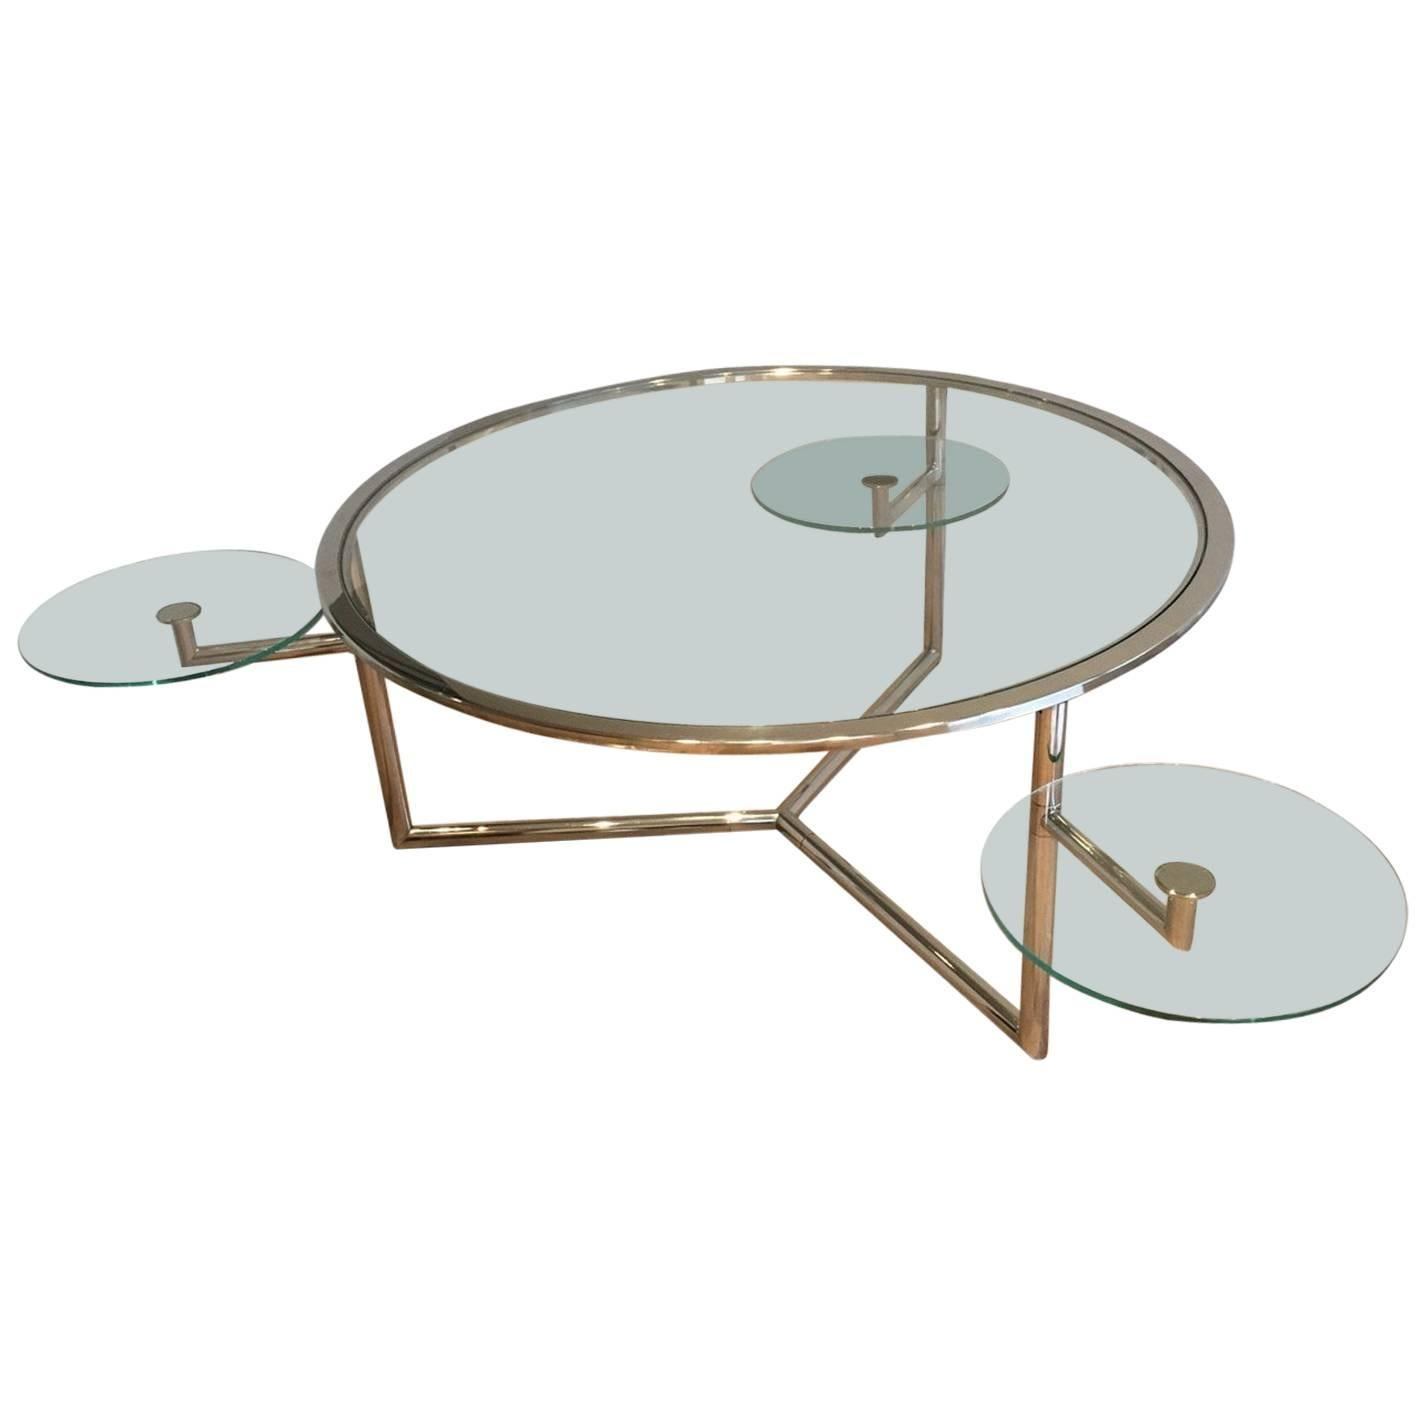 Round Chrome Coffee Table With Three Pivoting Glass Shelves 1